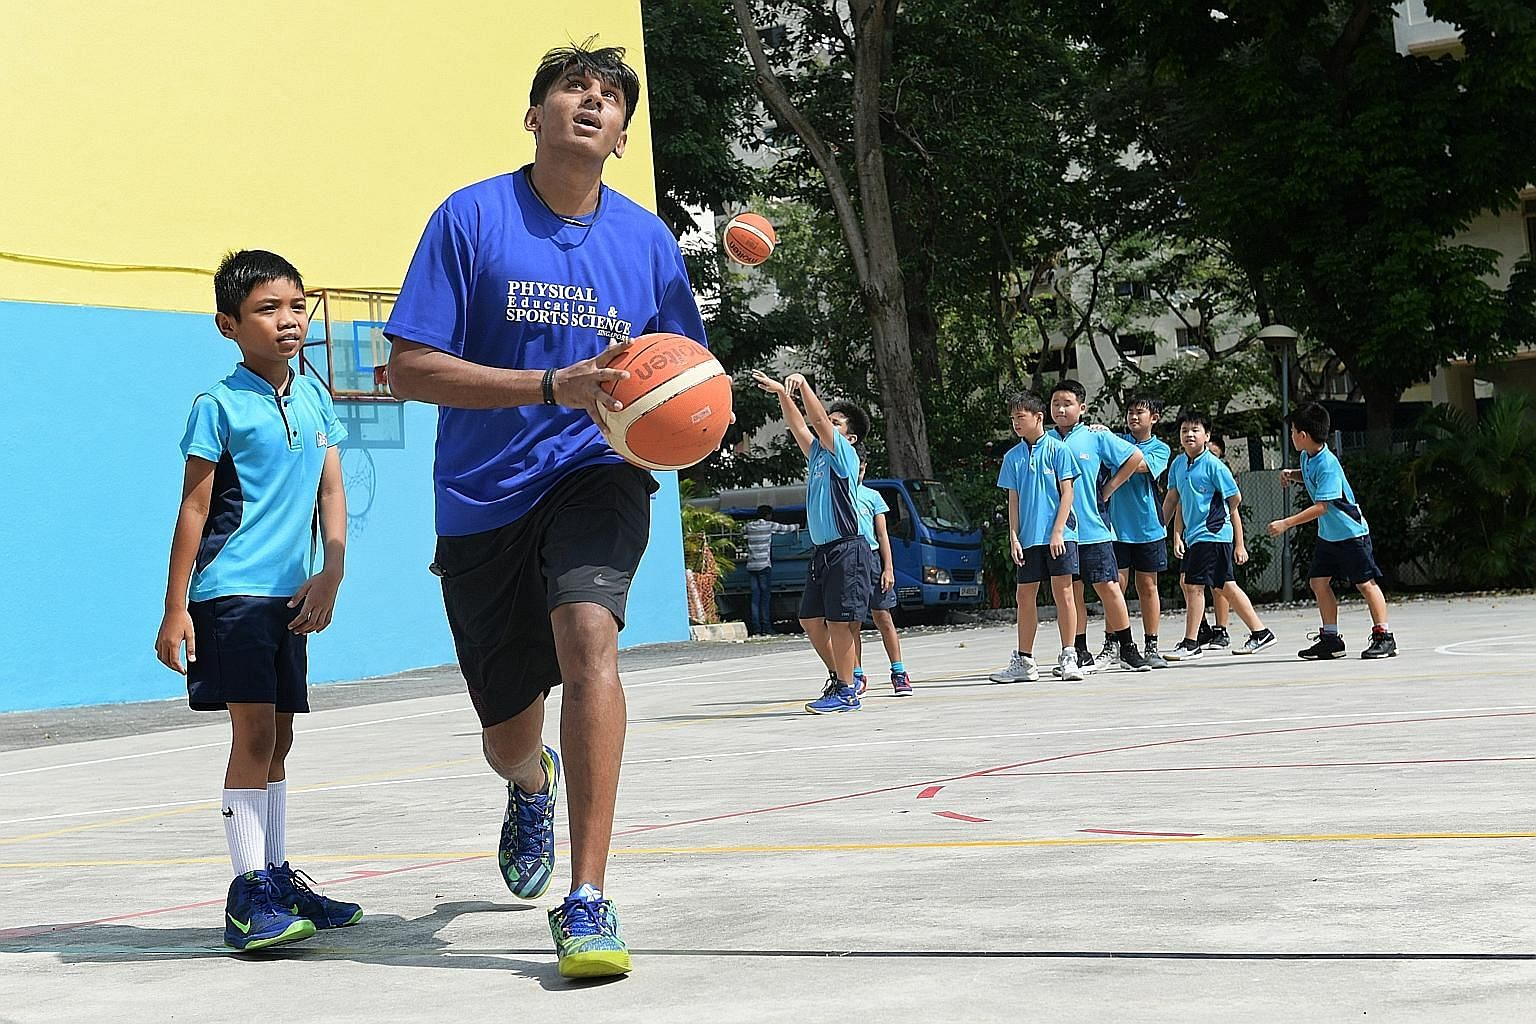 First Toa Payoh Primary School teacher Joel Prathiev Vinson, who has been in the profession for more than six years, tries to use his PE lessons to inculcate good values and life skills in his young charges.